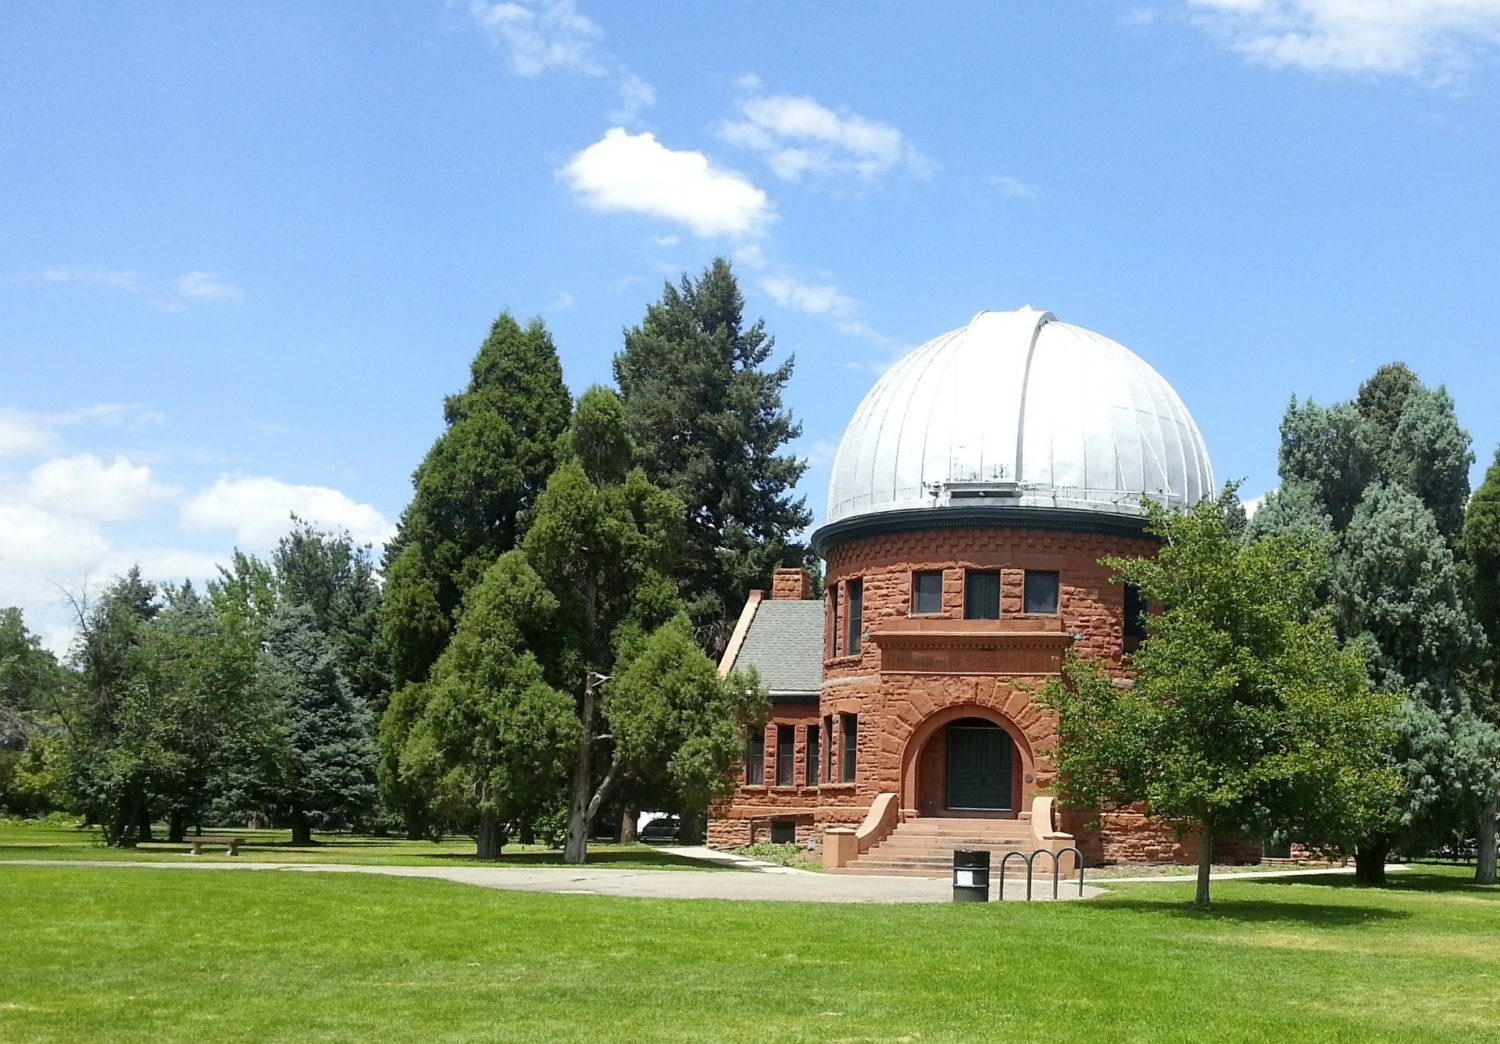 Chamberlin Observatory, Denver, Colorado